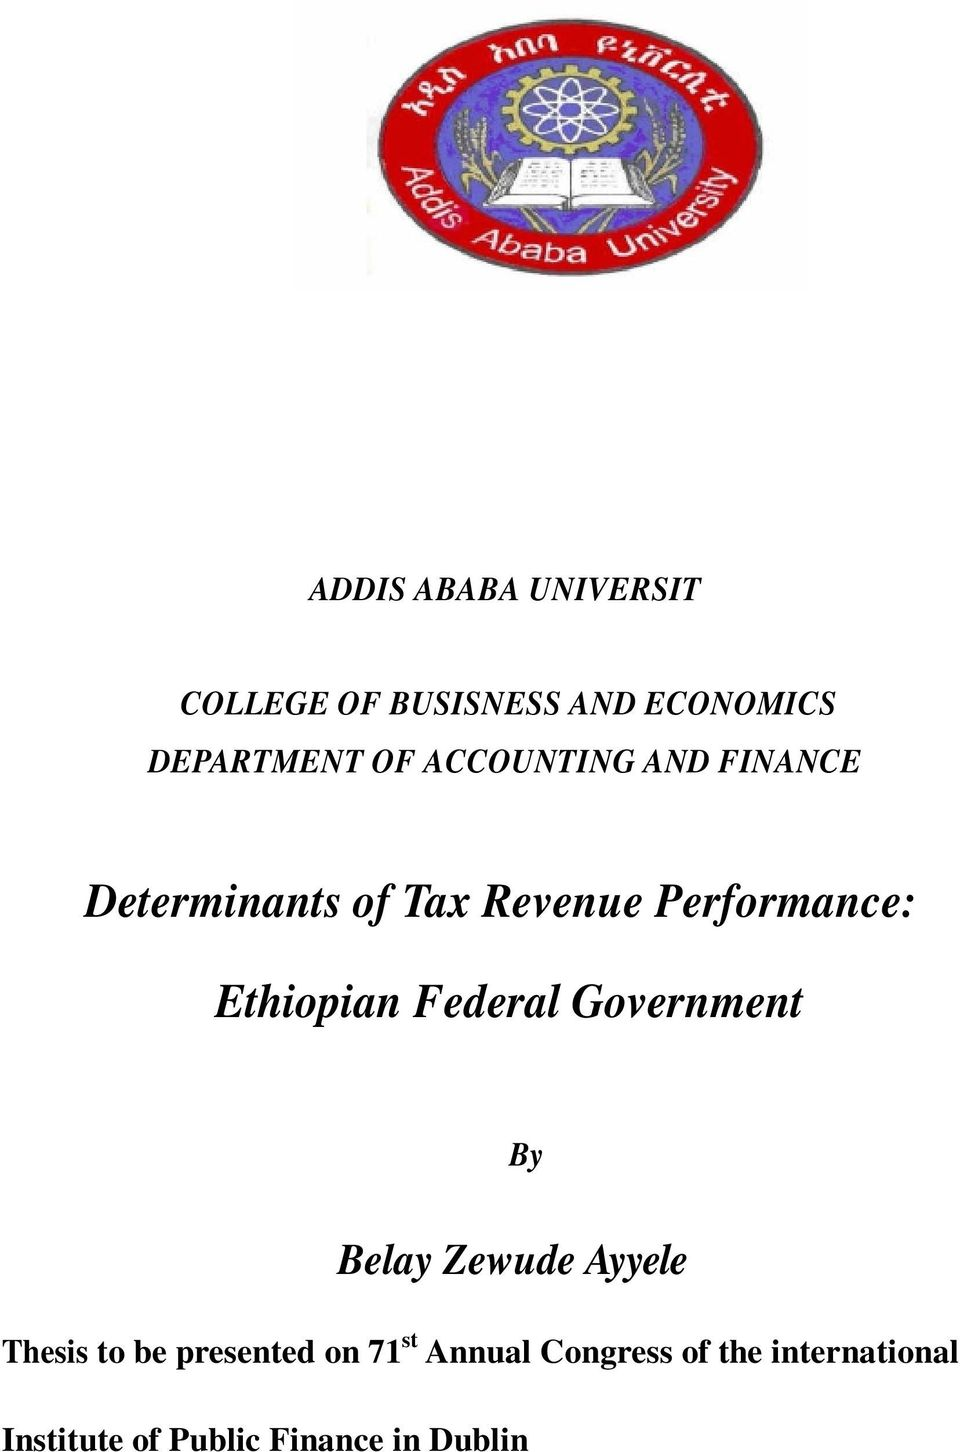 ethiopian ma thesis on accounting and finance pdf